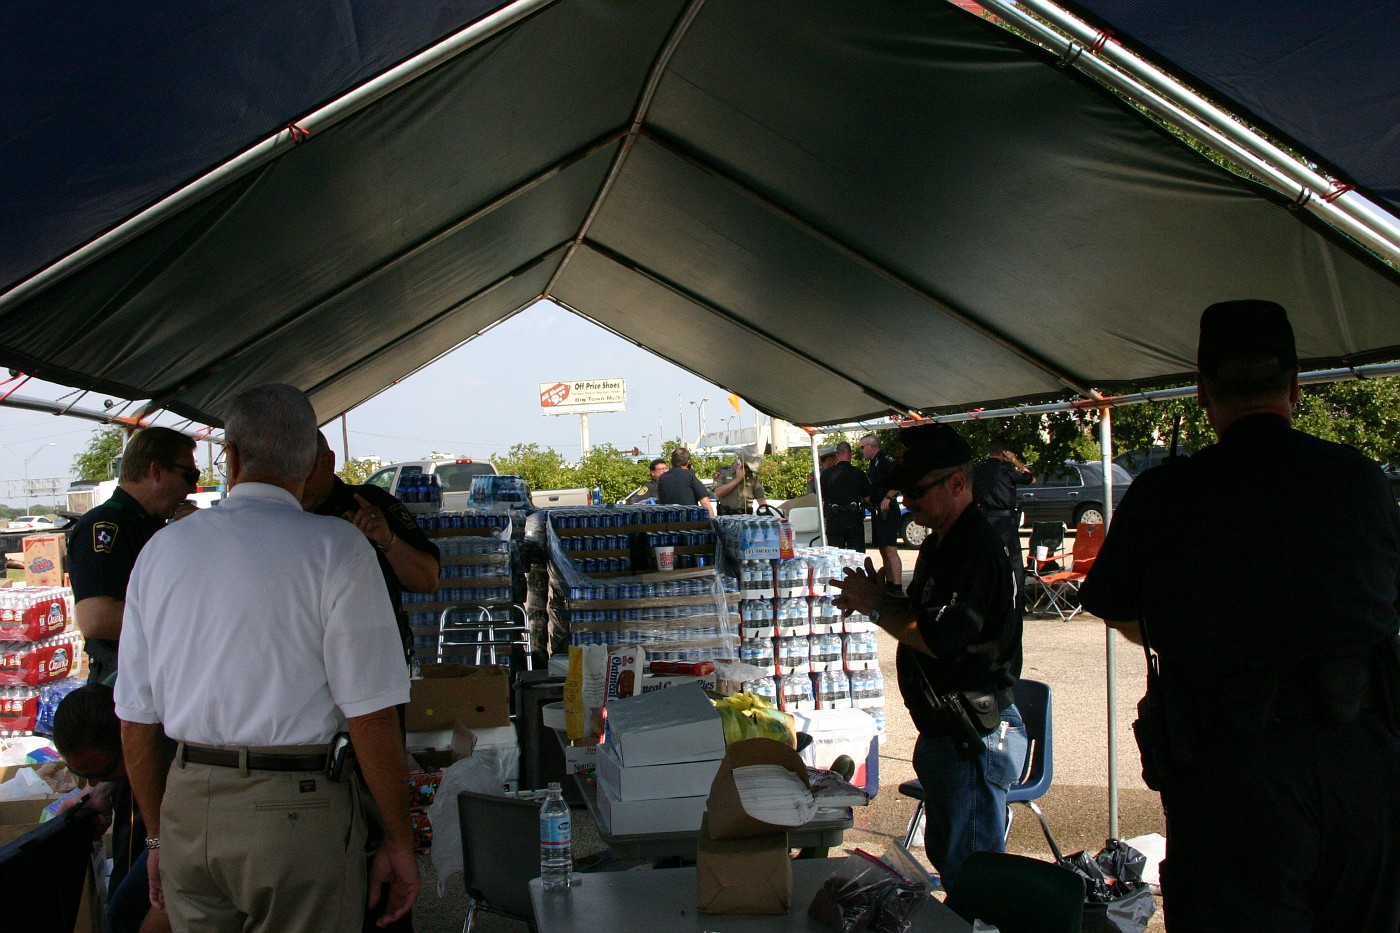 Staff shelter at command post